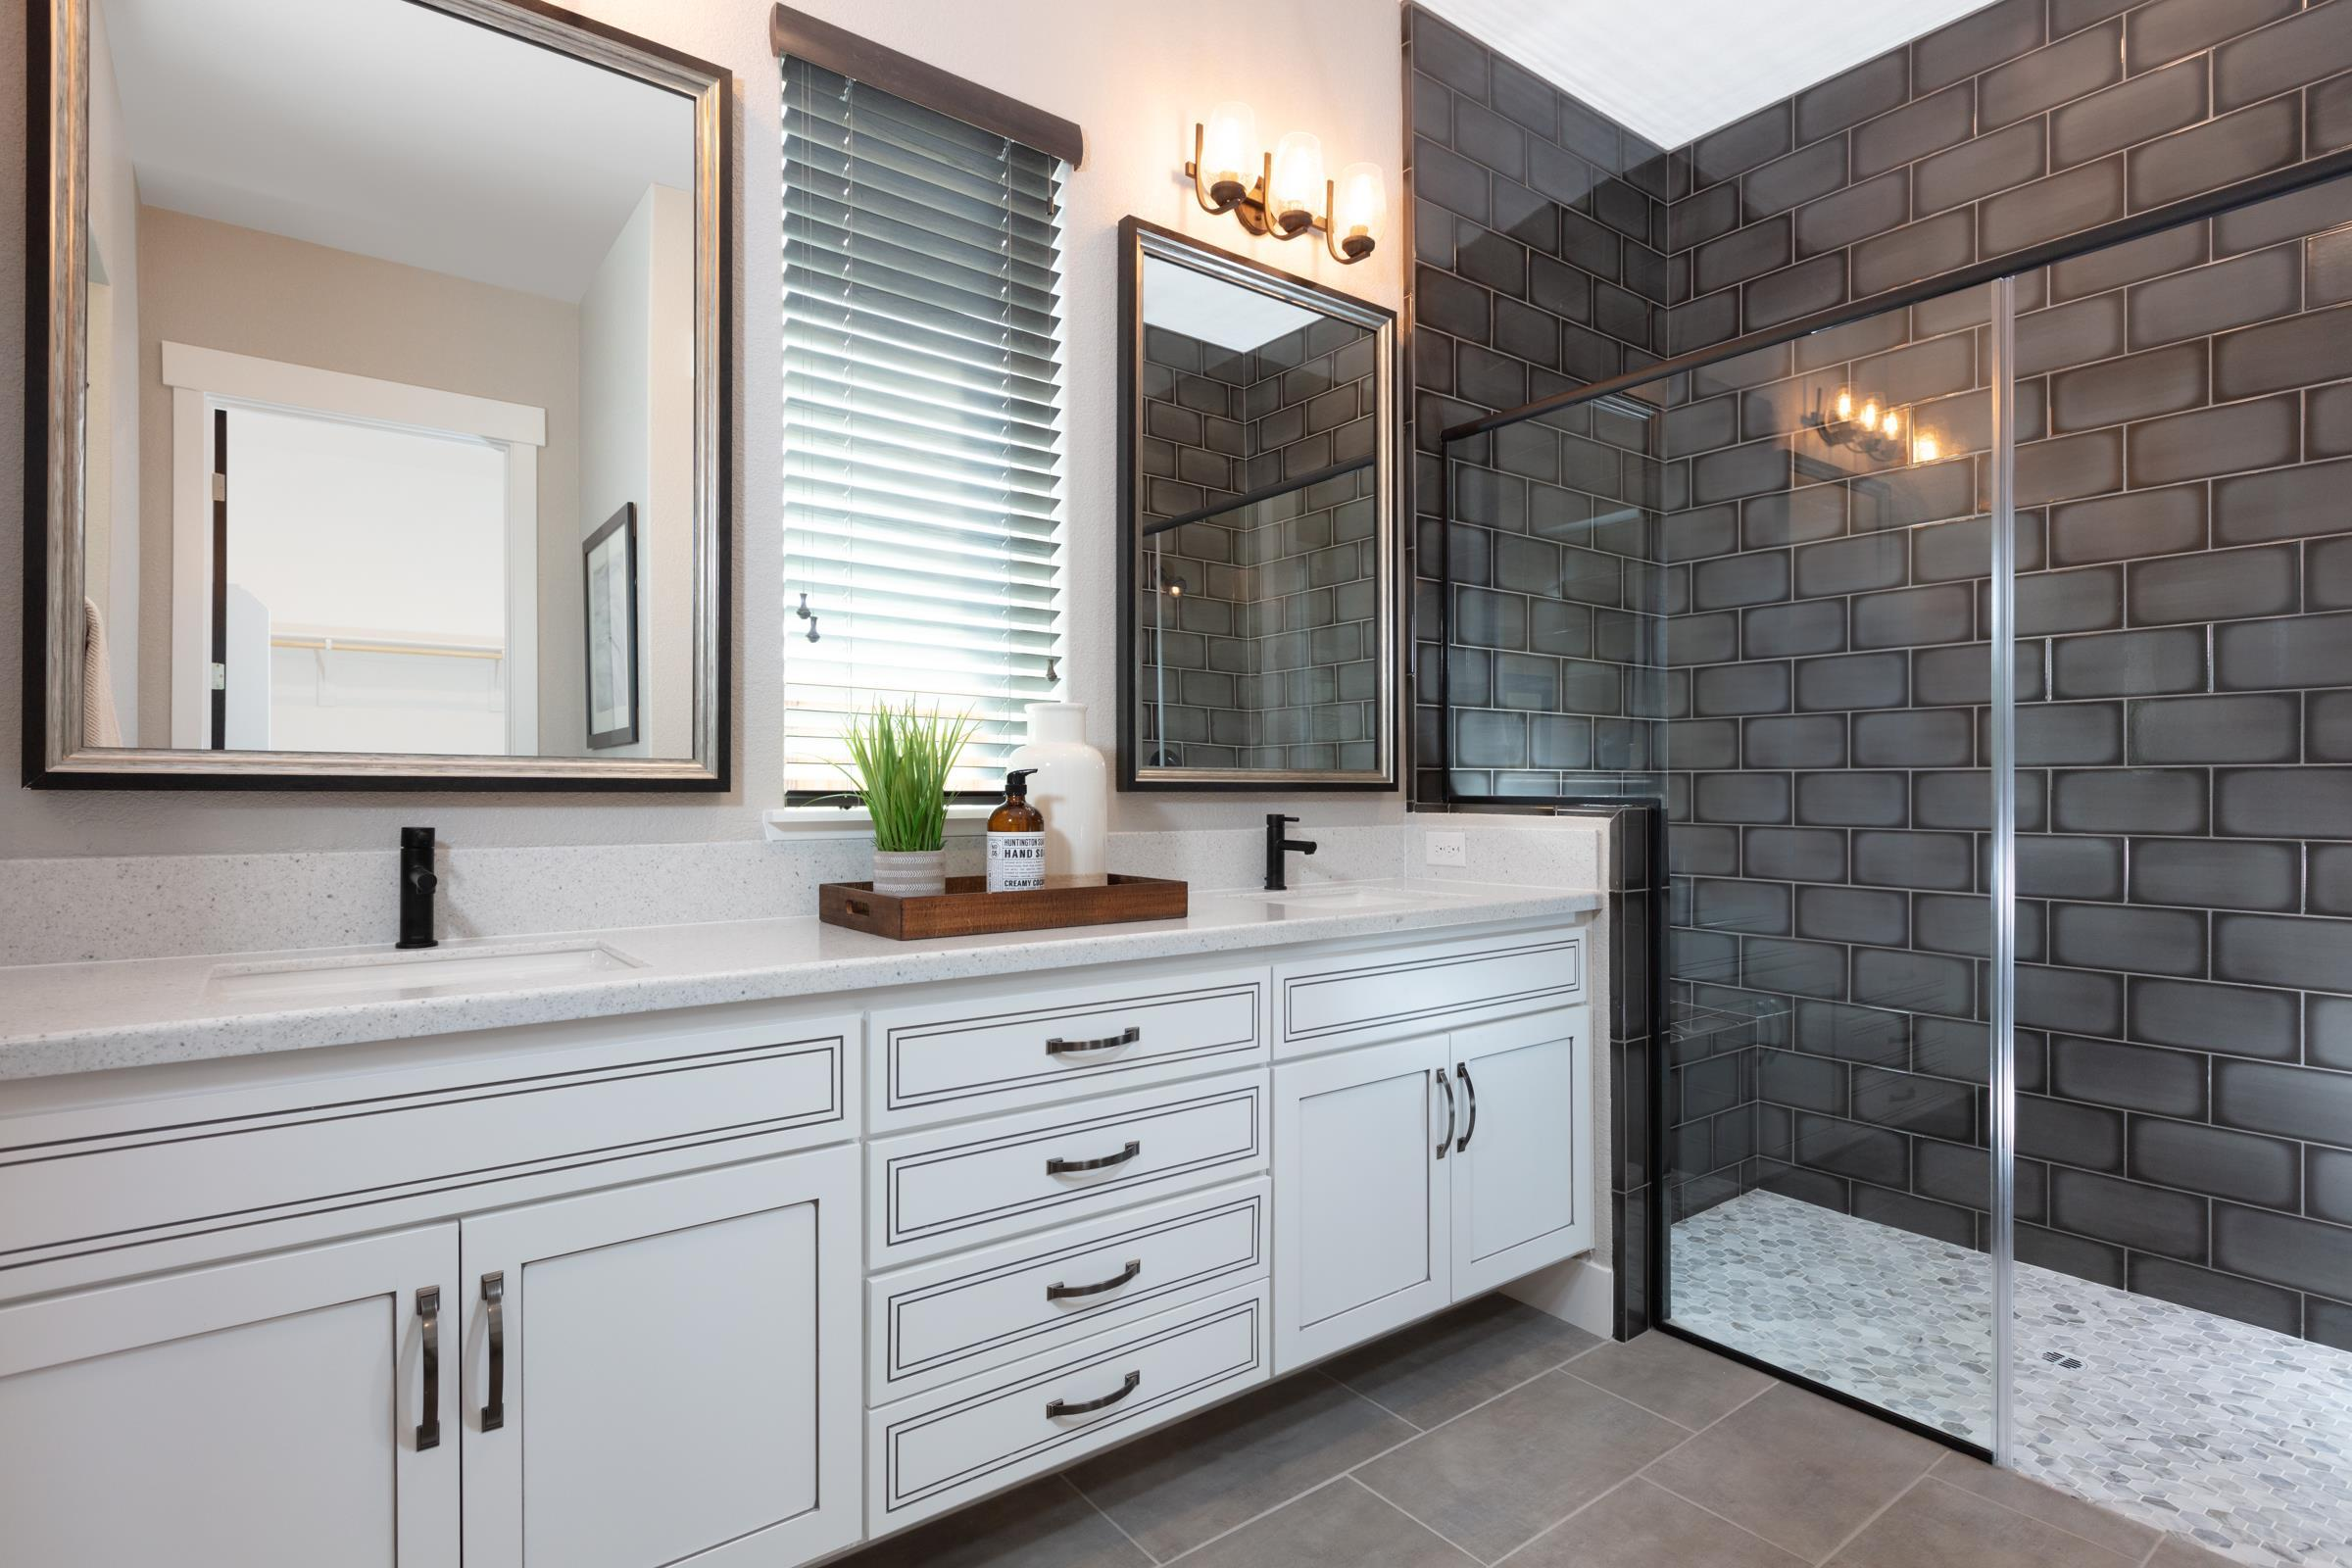 Bathroom featured in the Plan 3 Bungalow By Anthem United Homes Inc in Stockton-Lodi, CA